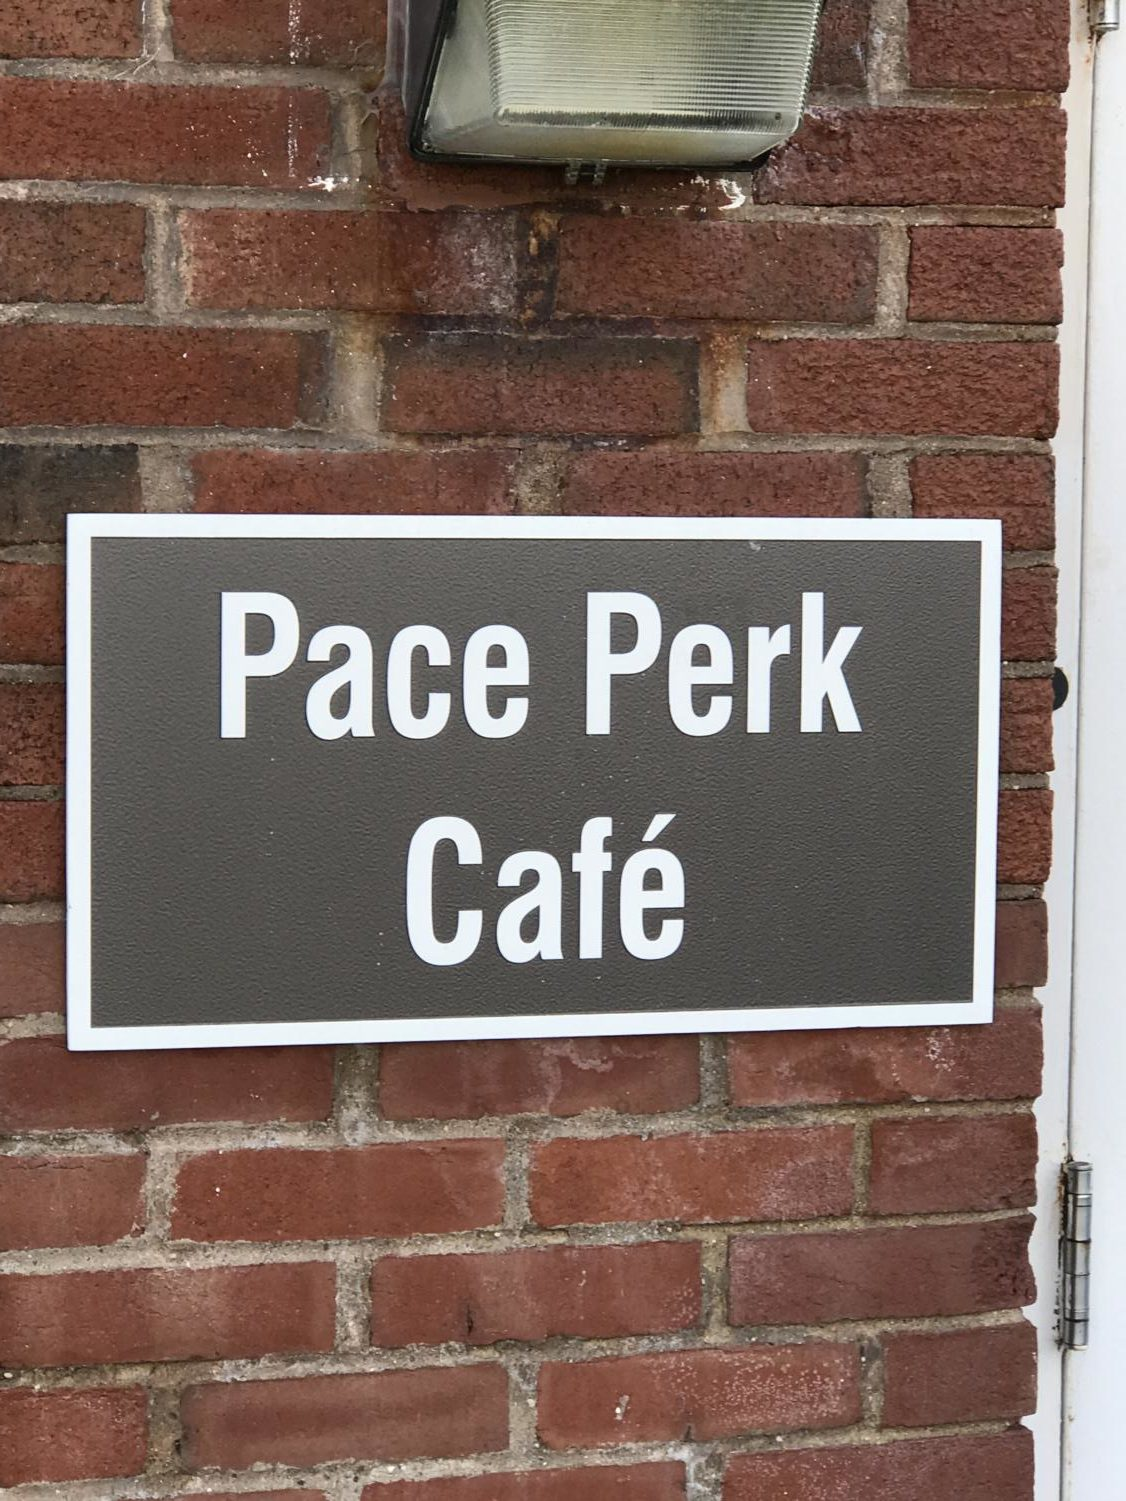 Pace Perk. Once of the establishments only business majors can apply to. Photo Taken by Josiah Darnell